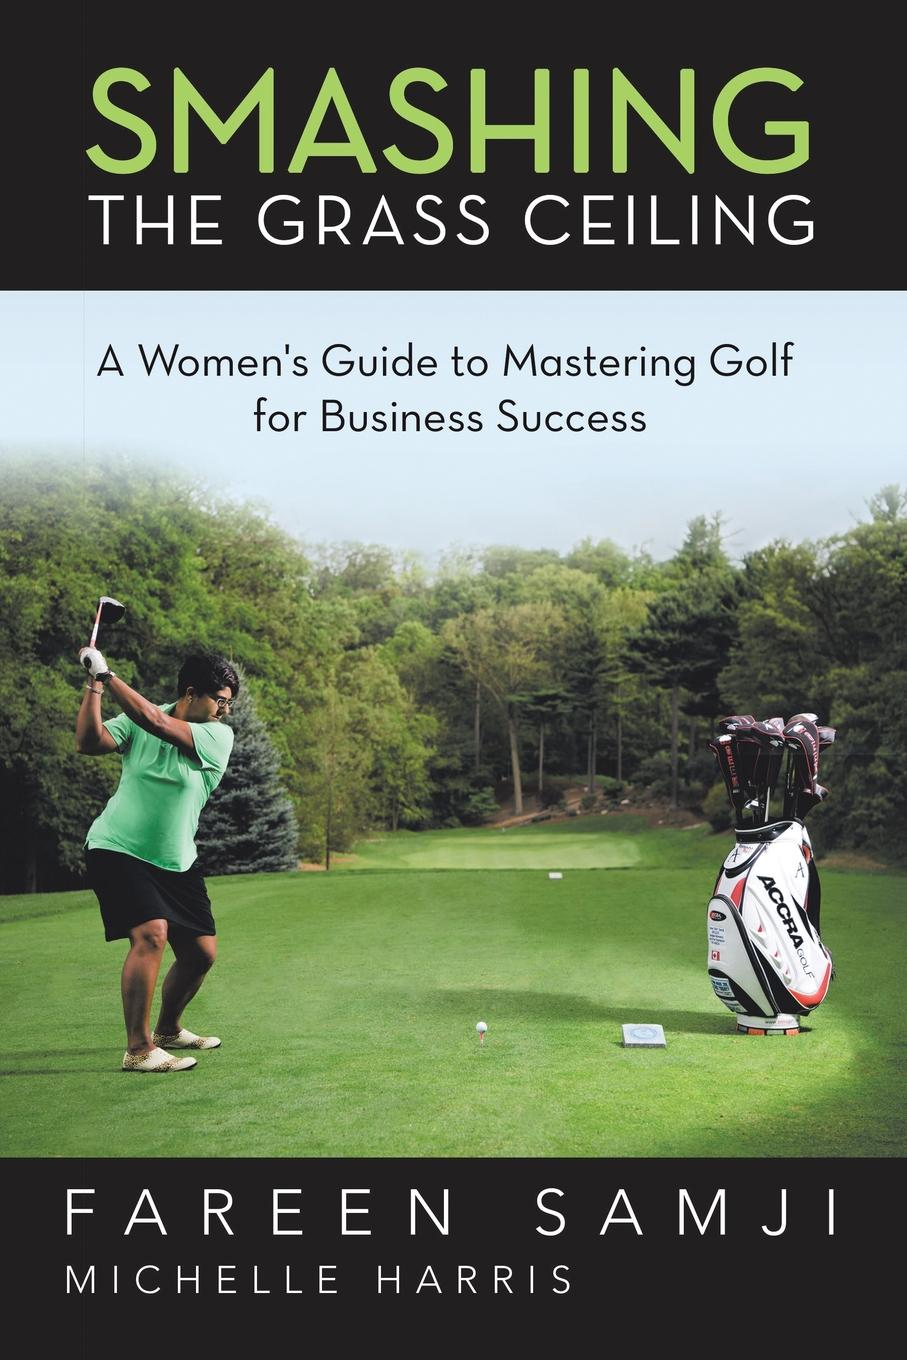 Fareen Samji Smashing the Grass Ceiling. A Women.s Guide to Mastering Golf for Business Success golf courses